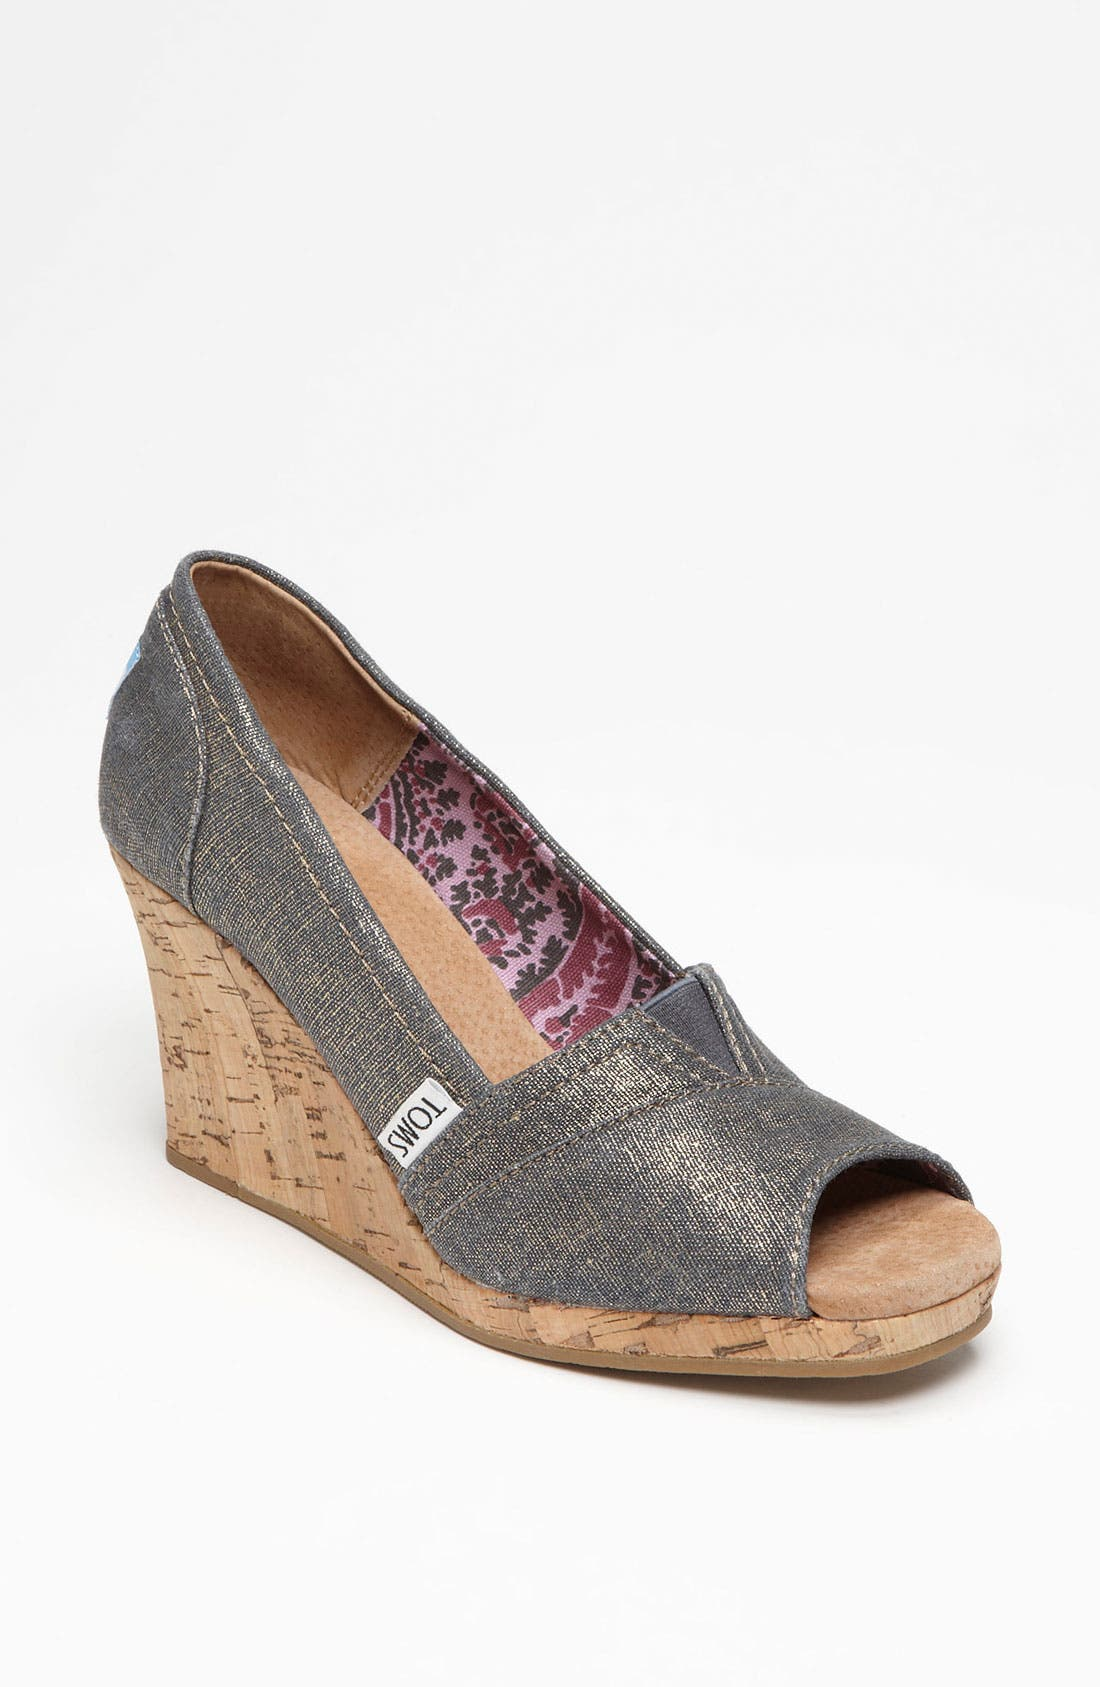 Alternate Image 1 Selected - TOMS 'Azar' Wedge